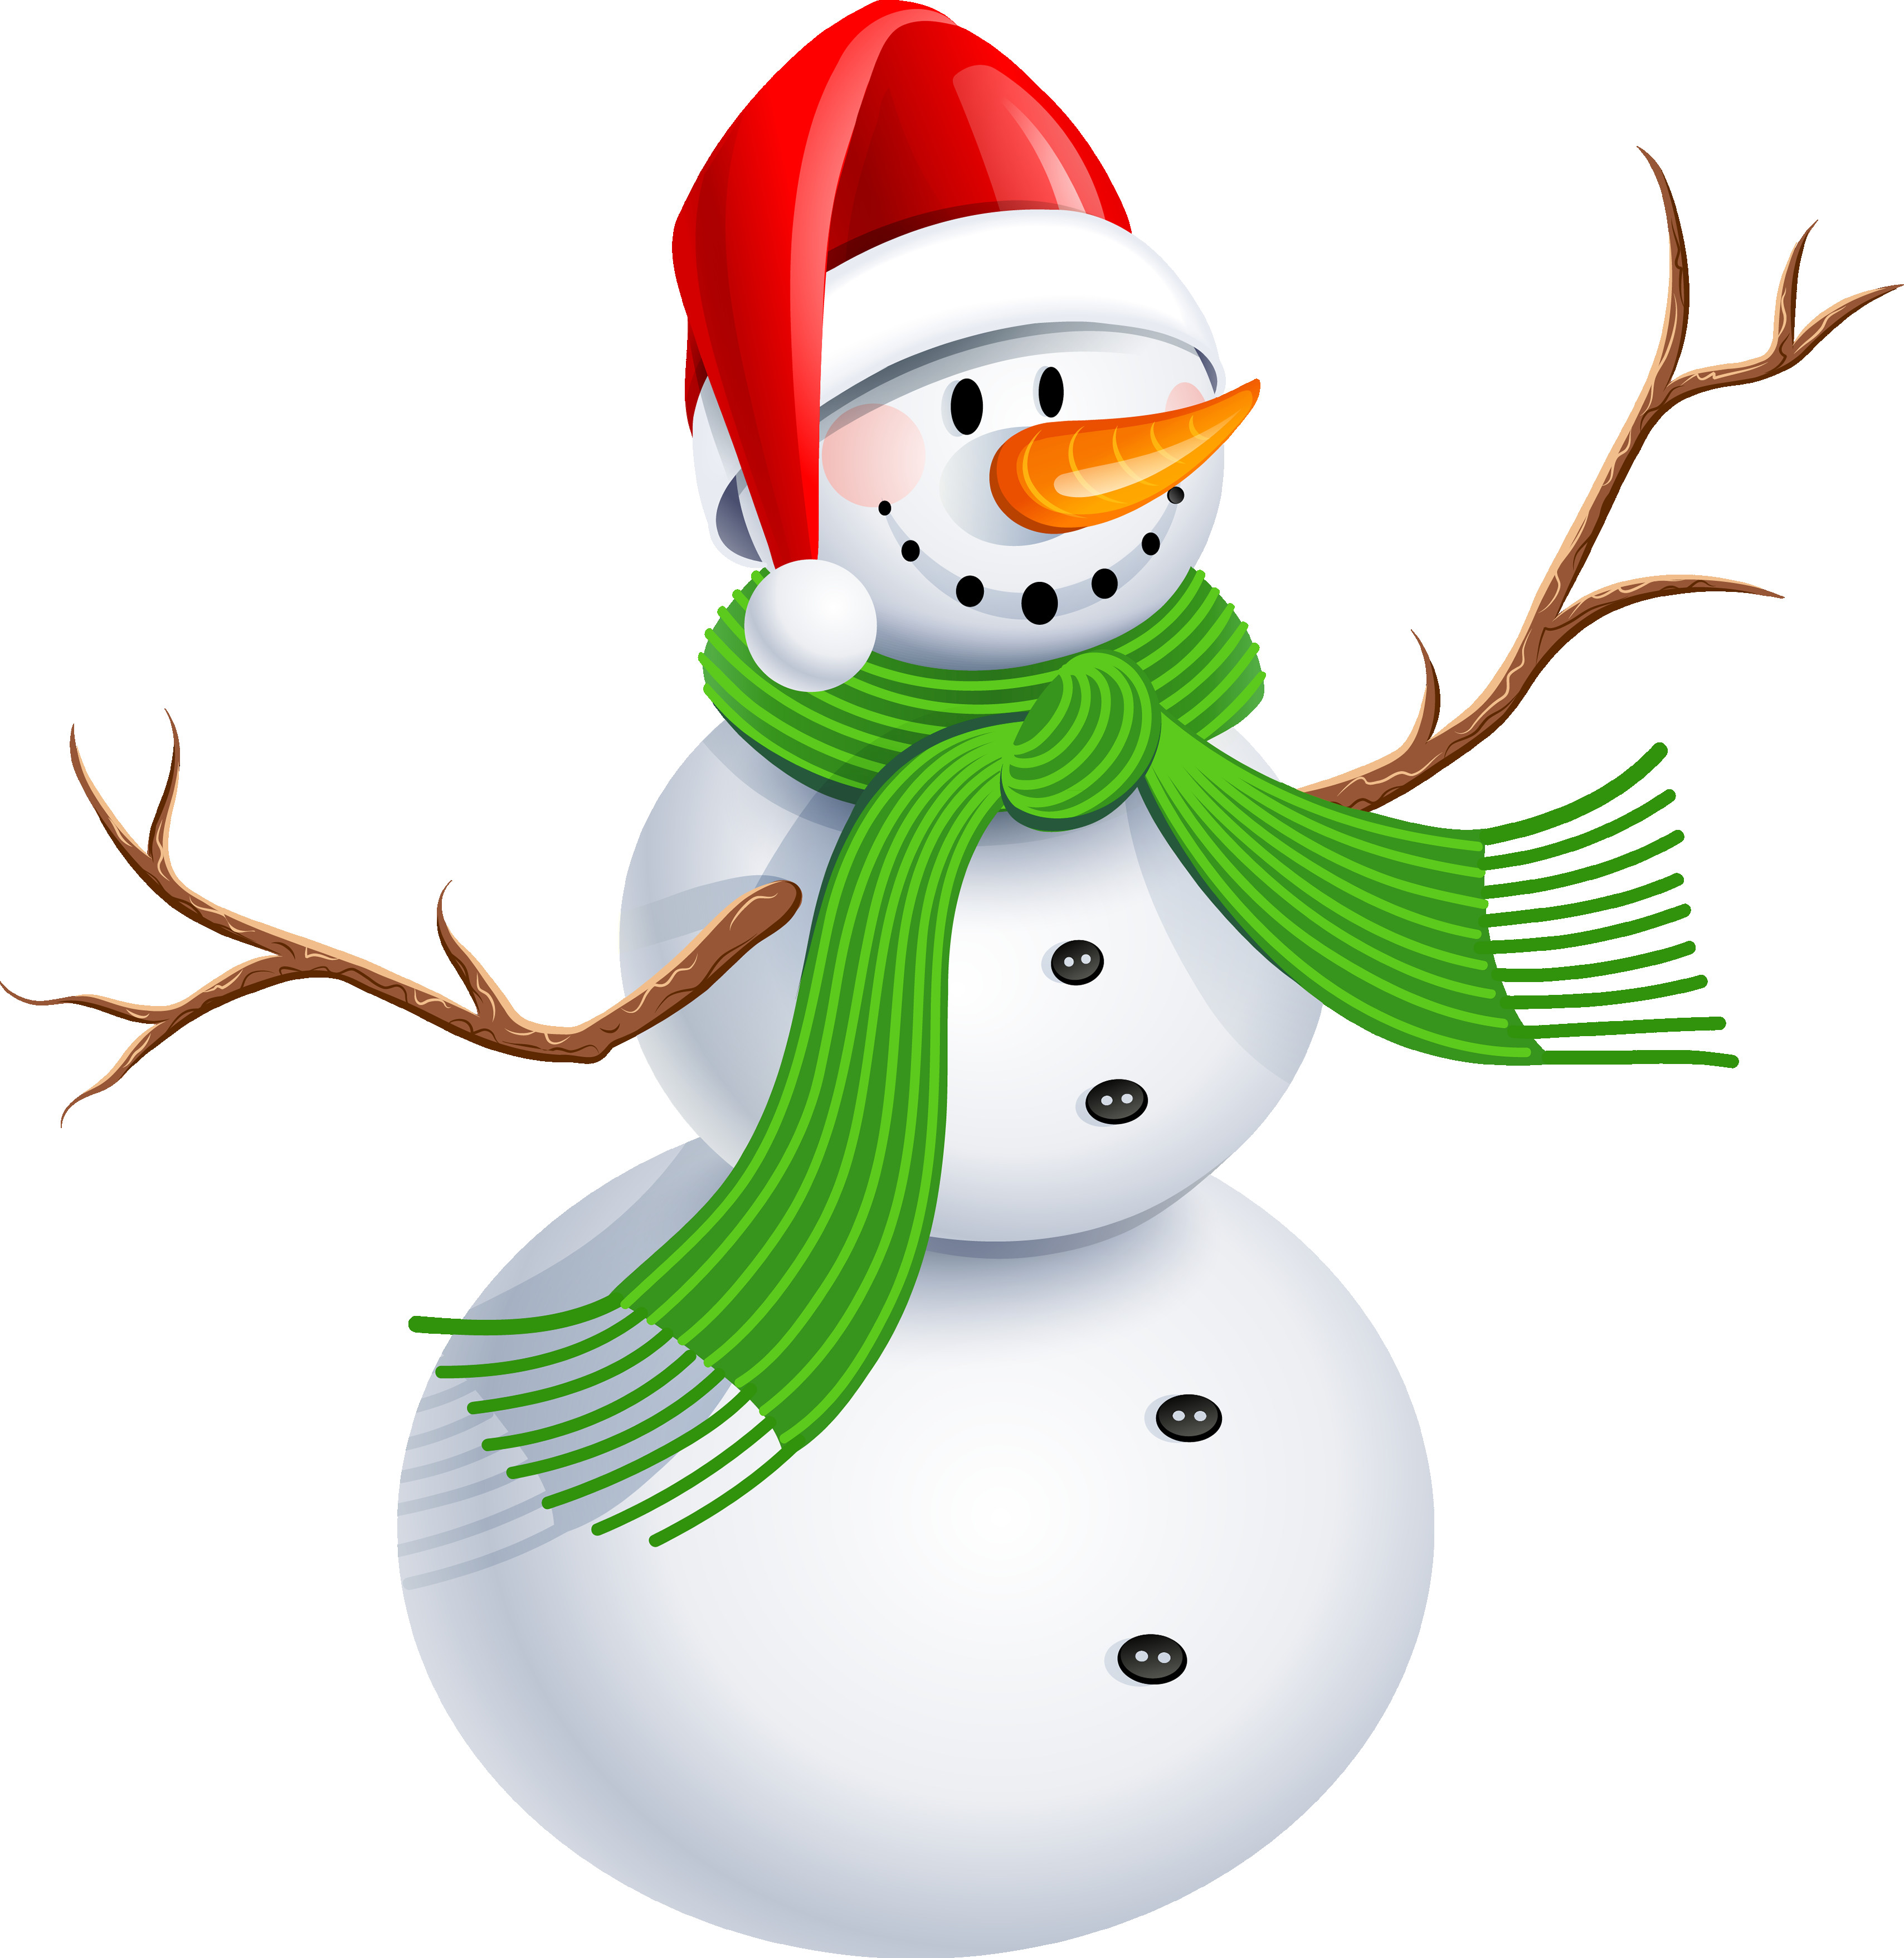 3417x3513 Christmas Snowman Clip Art Free Clipart Best Holidays And Events